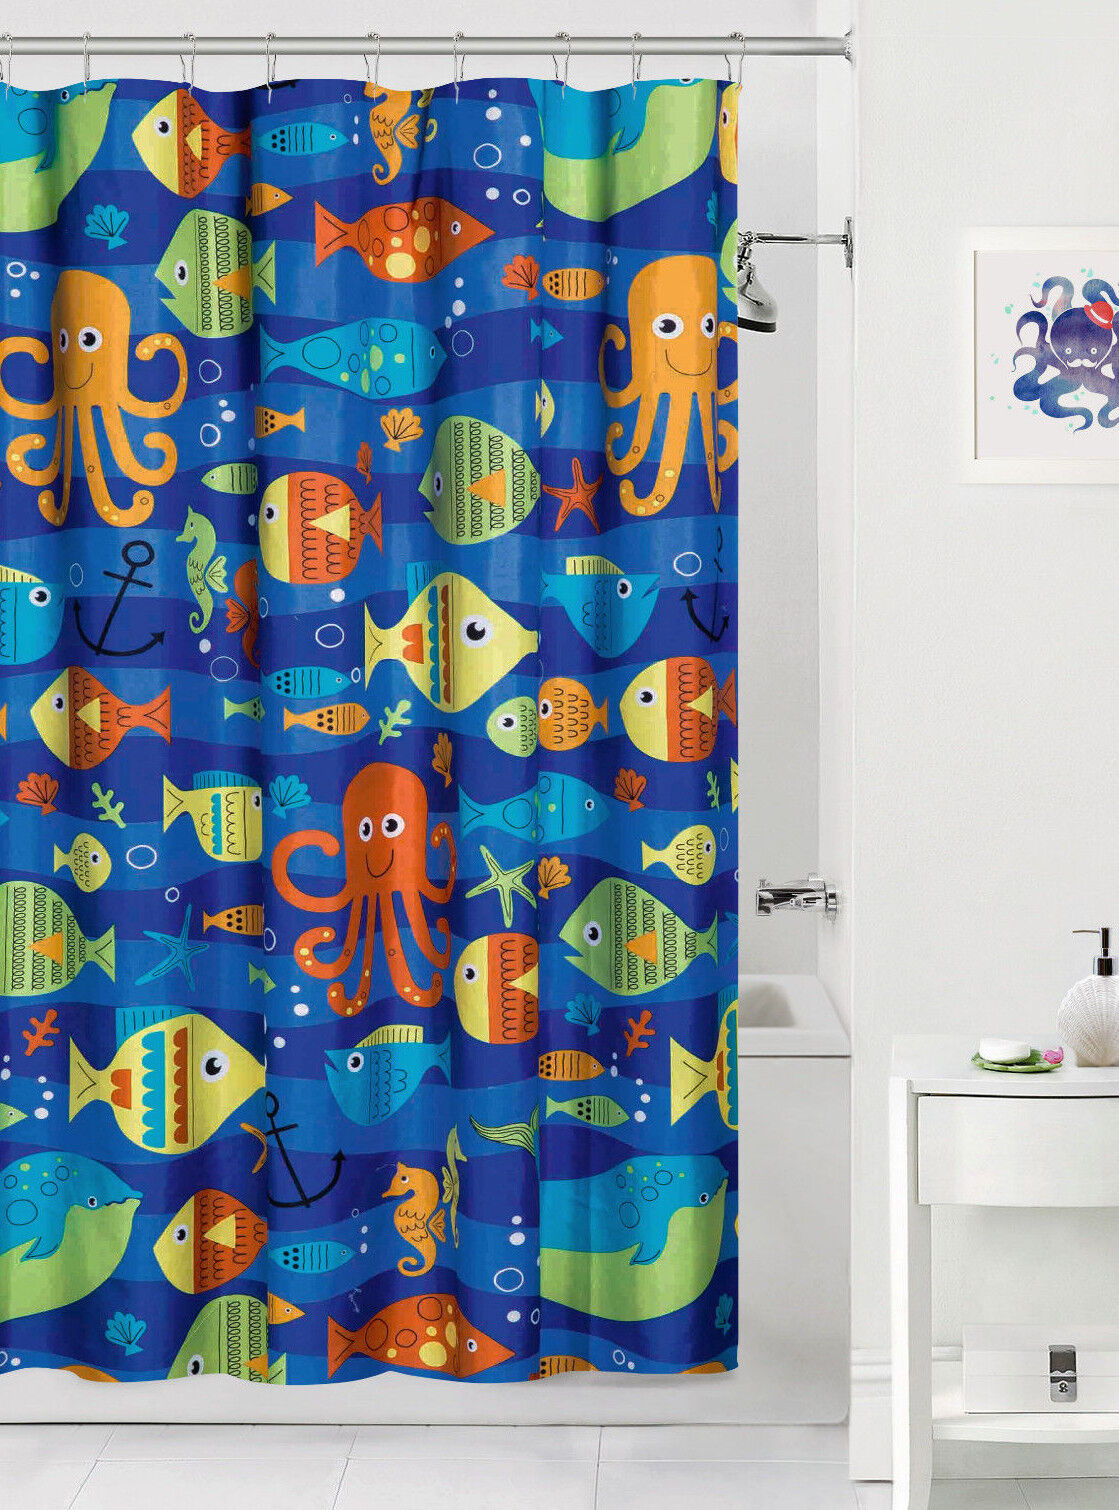 Sealife Colorful Ocean Fish Fabric Shower Curtain Bath Kids Child Octopus Decor